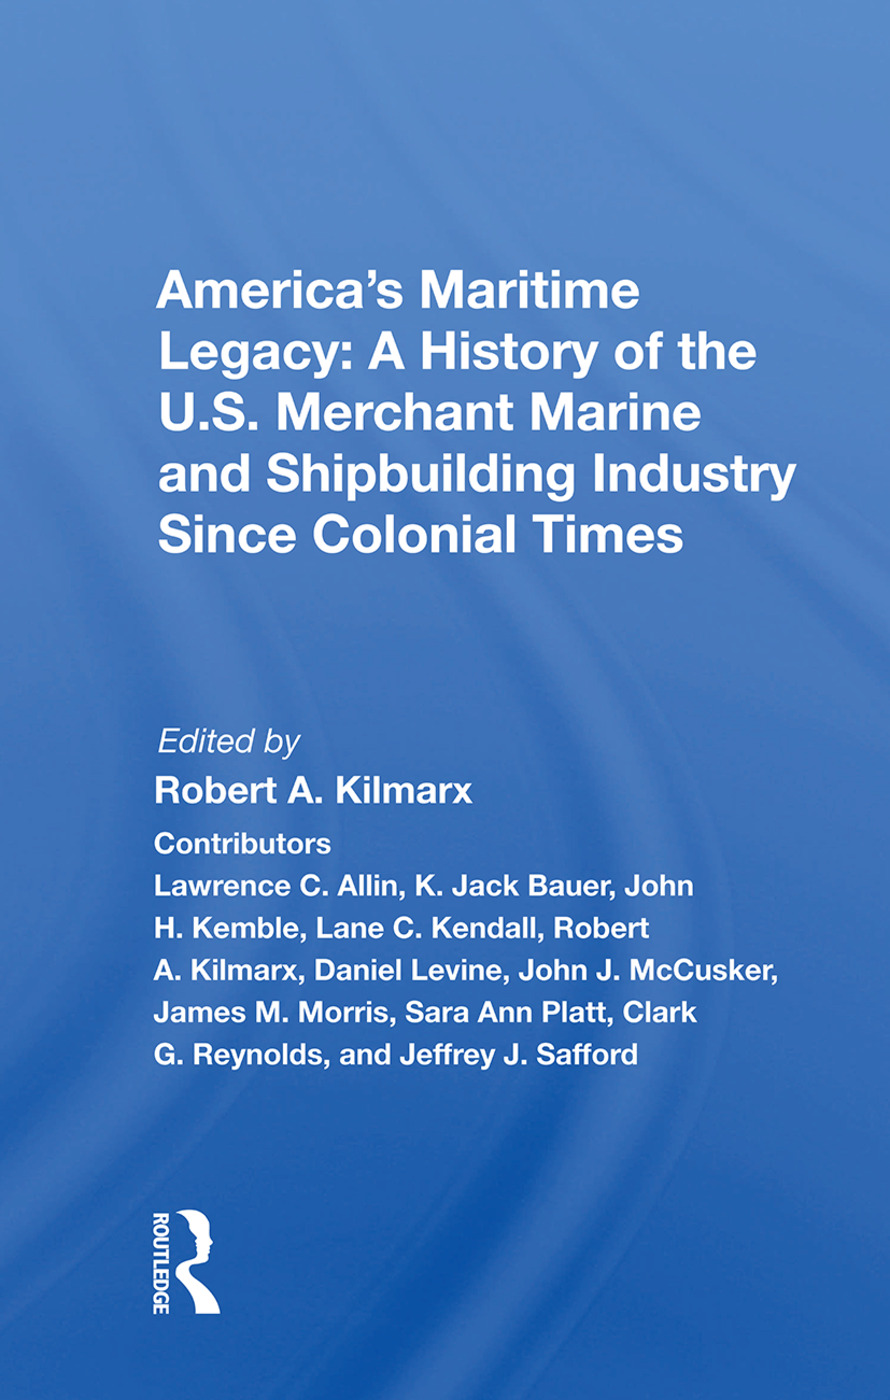 America's Maritime Legacy: A History of the U.S. Merchant Marine and Shipbuilding Industry Since Colonial Times